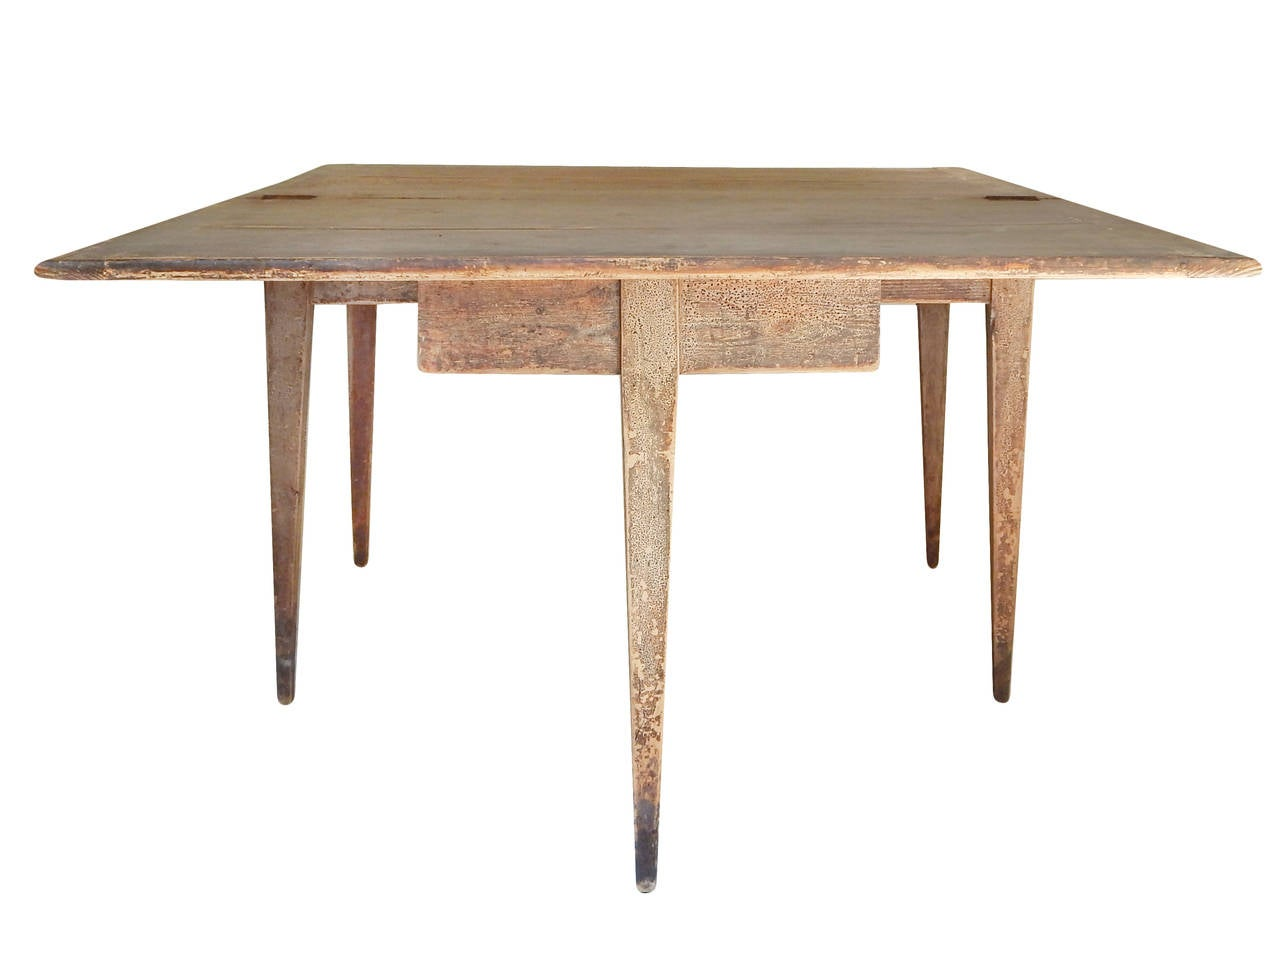 Unusual Swedish Extension Farm Table For Sale at 1stdibs